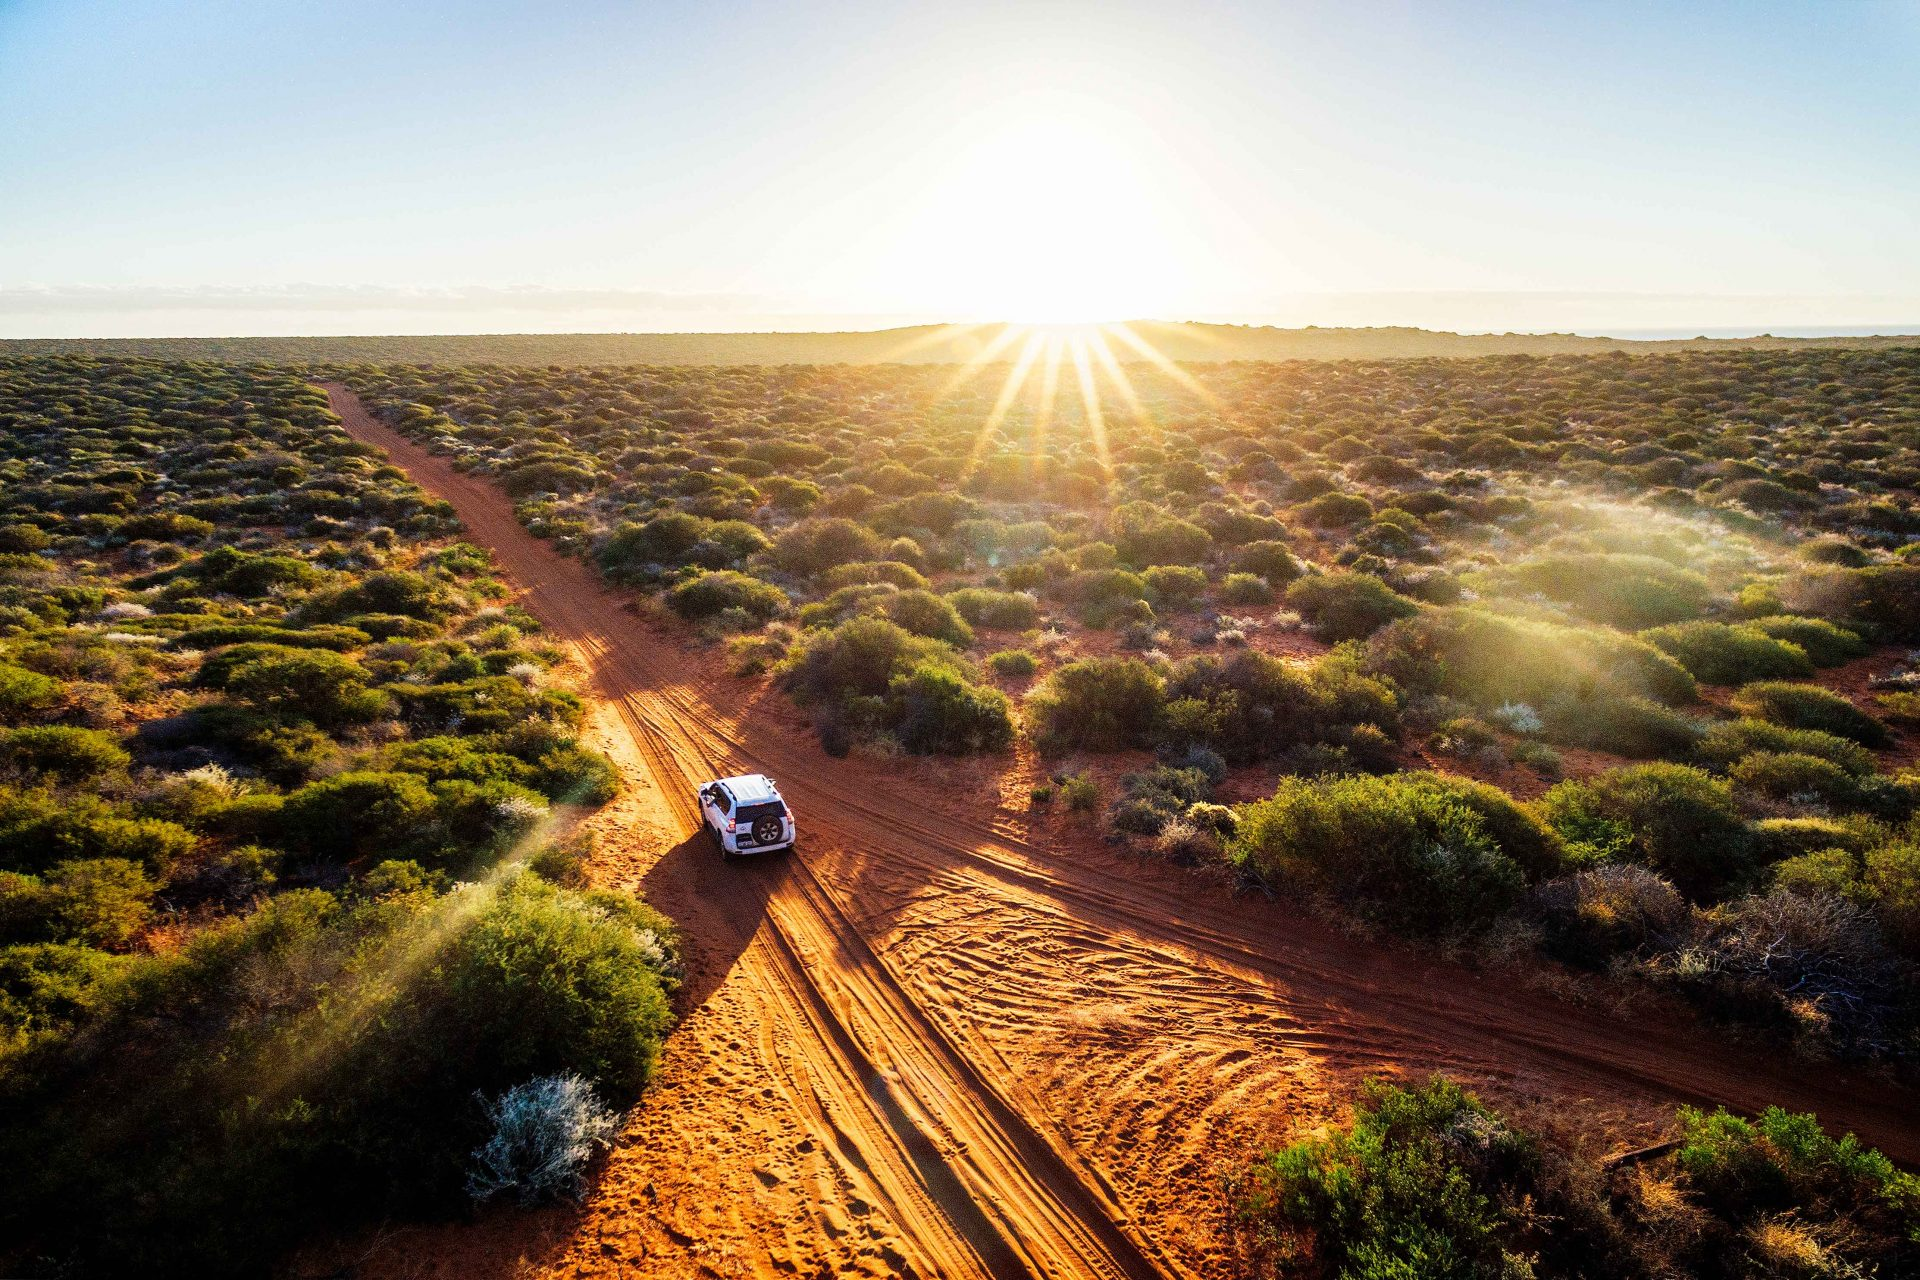 Travel to Australia - Outback Australia